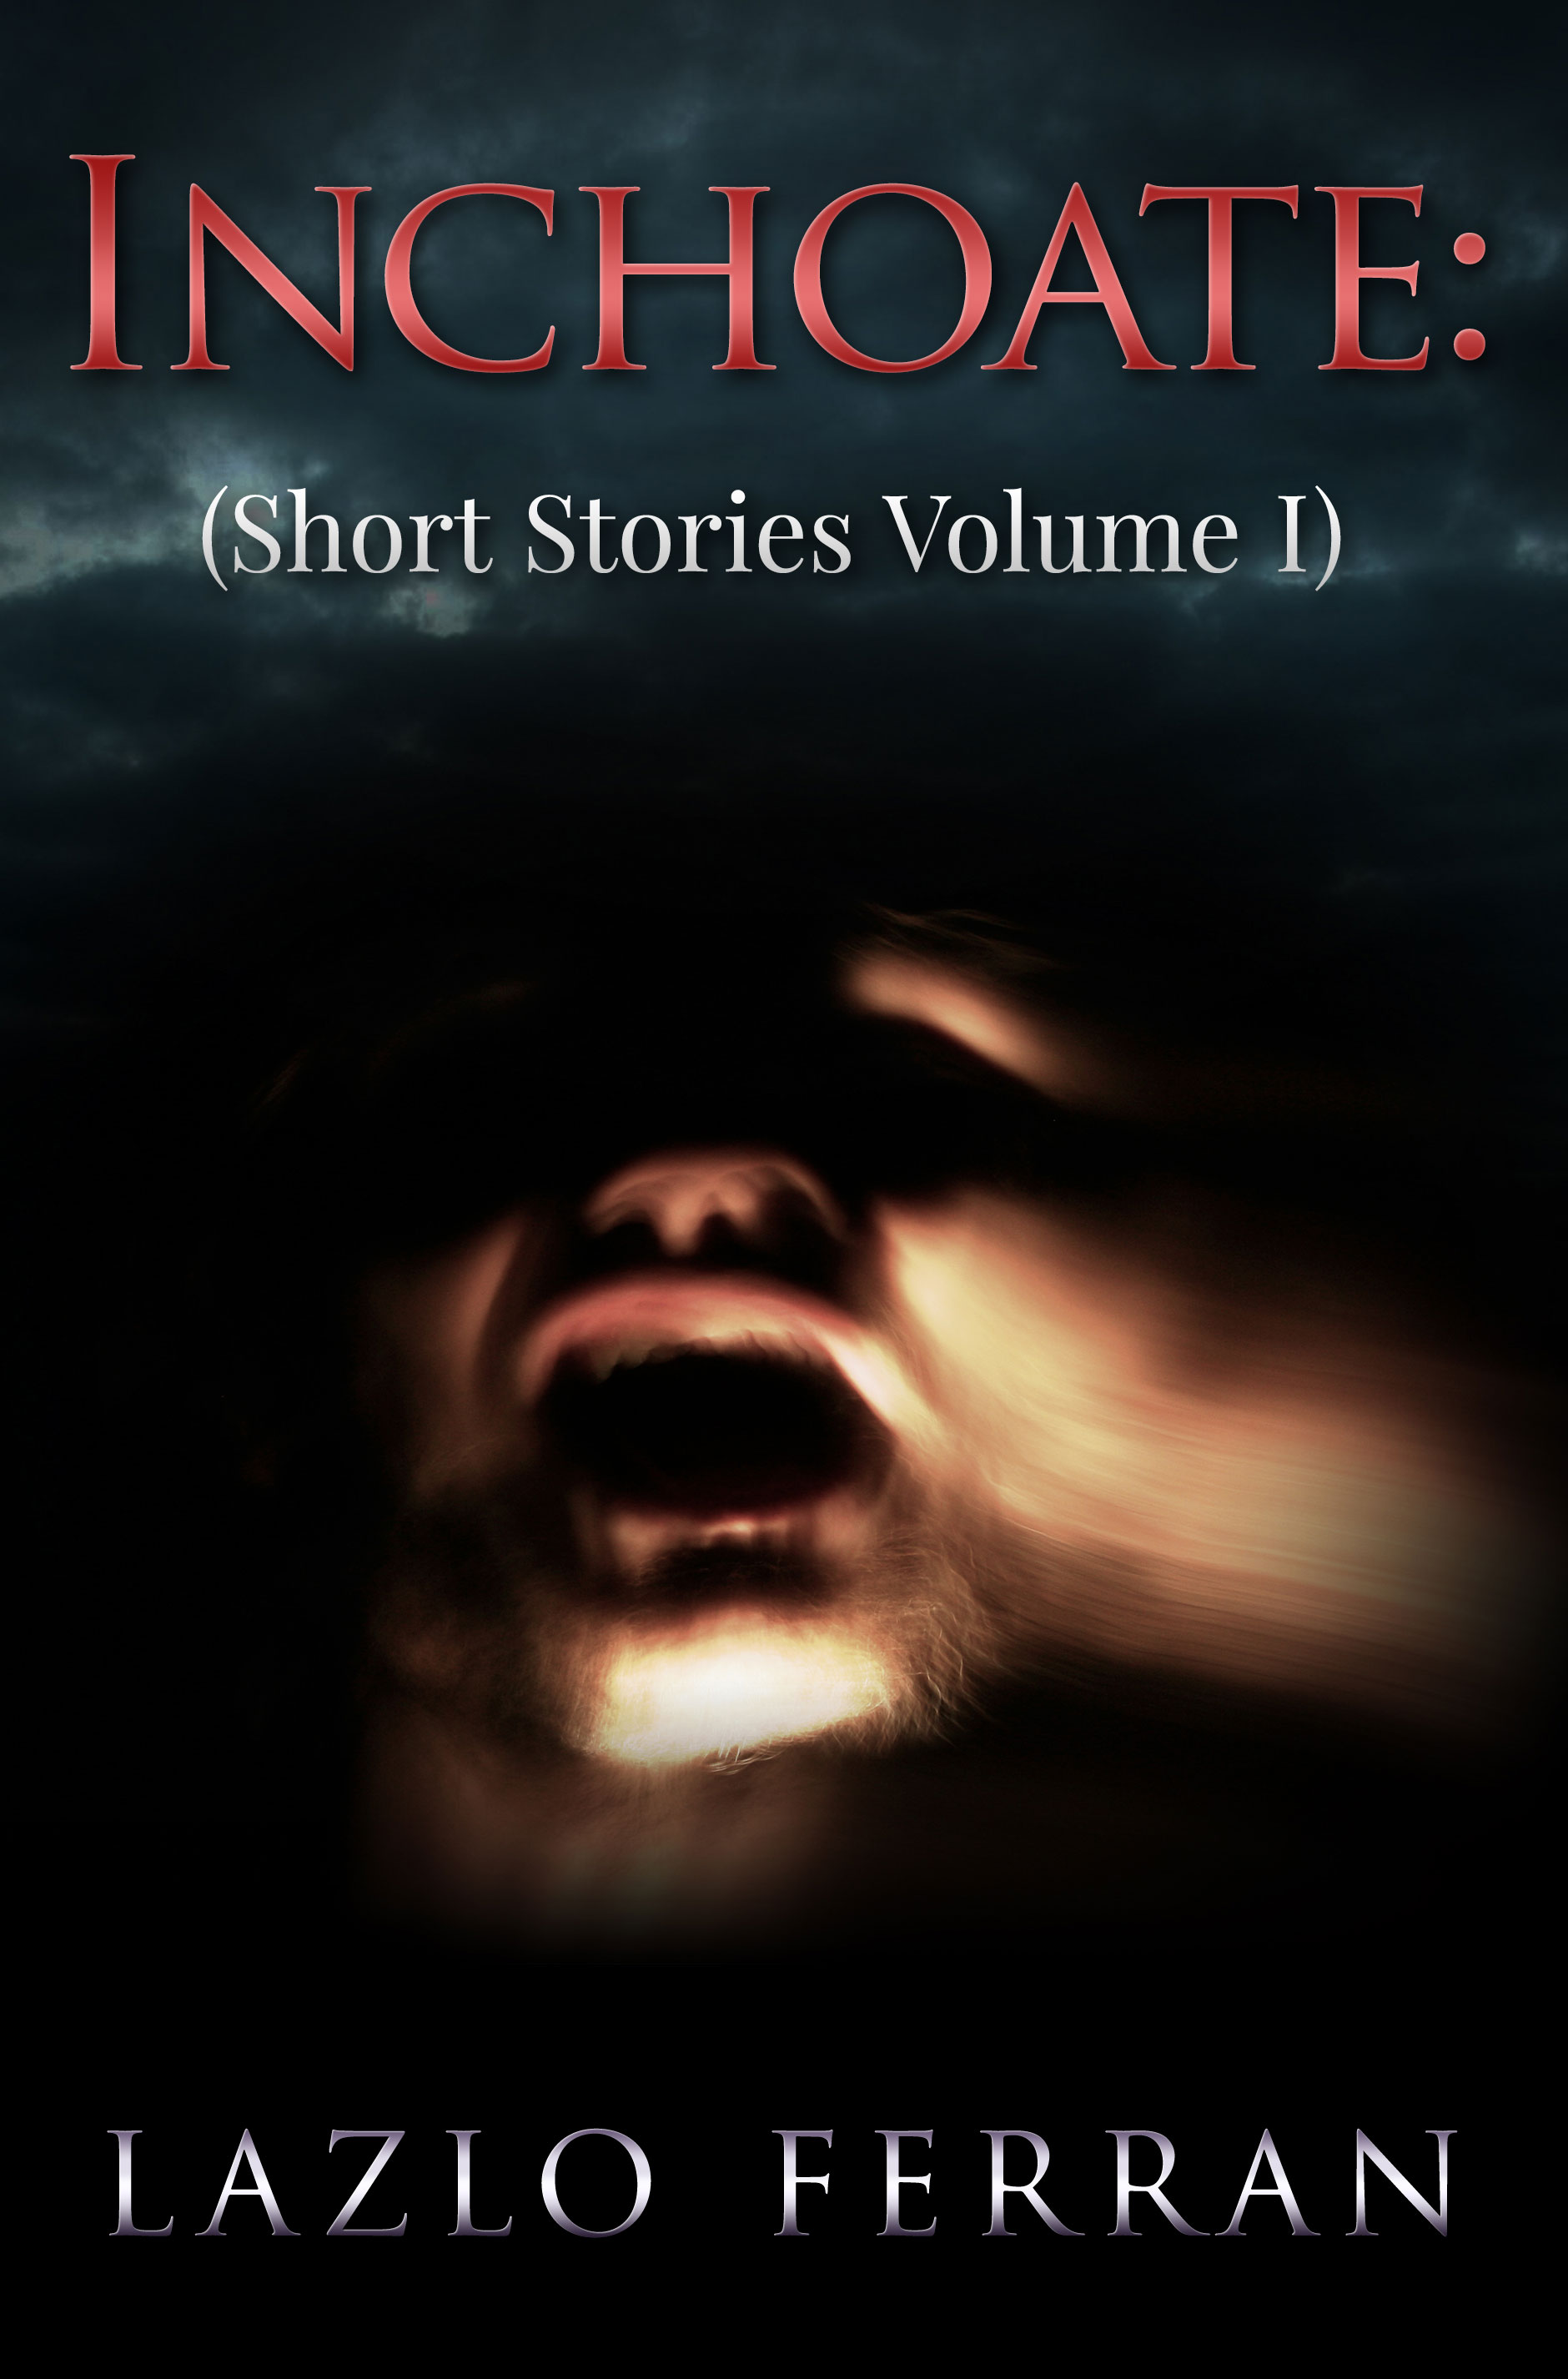 Short Stories Series (all use same cover)